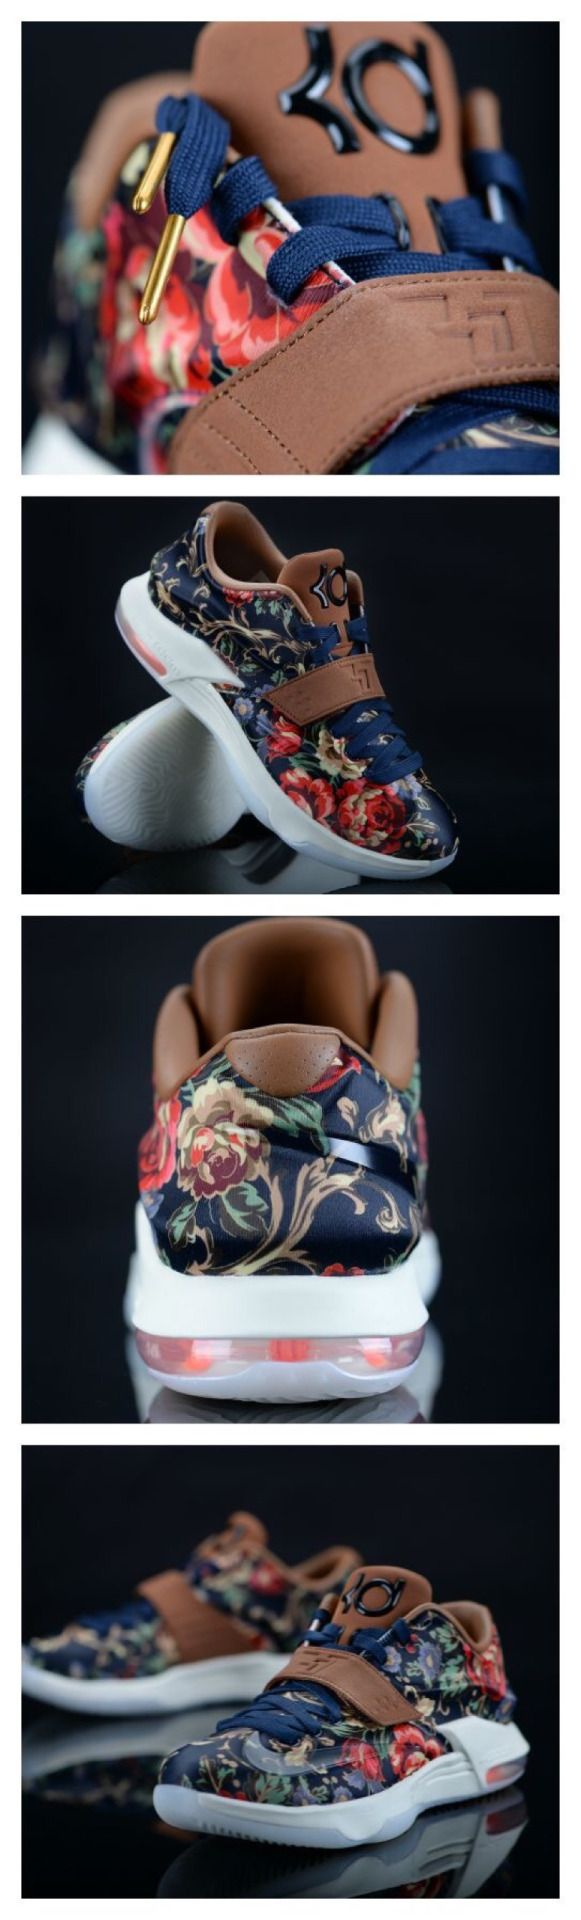 Floral Nike KD 7's | http://m.eastbay.com/index